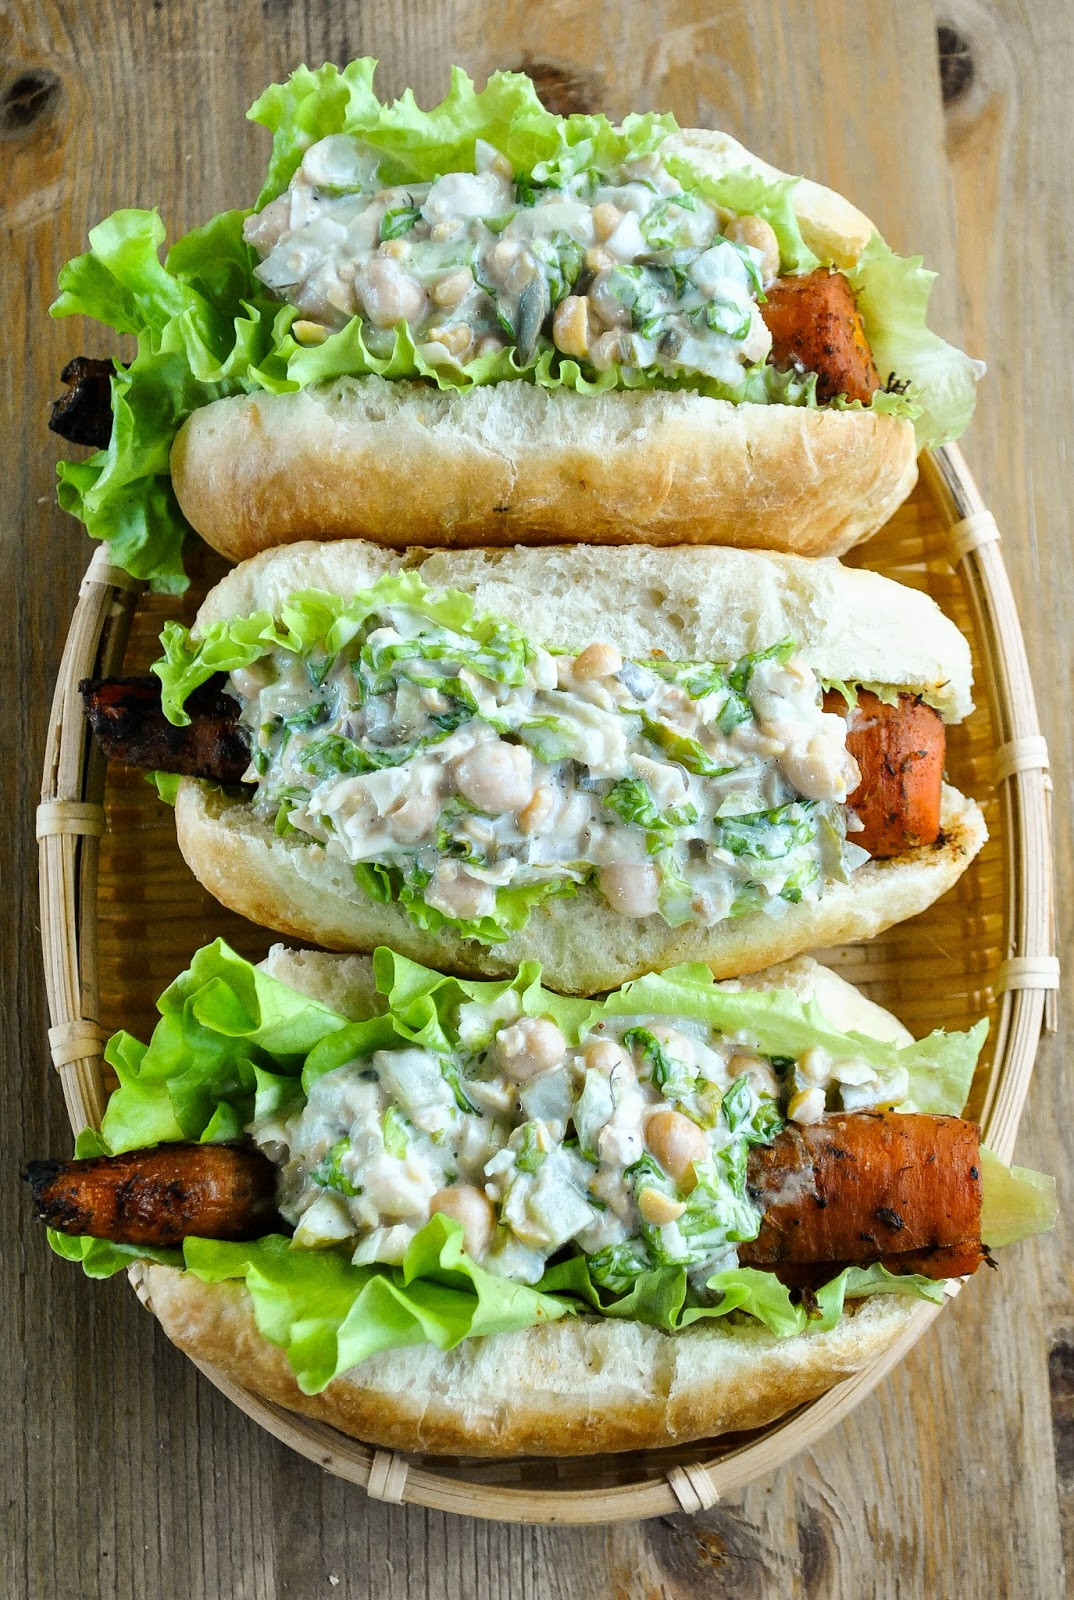 Vegetarian Bbq Recipes  Smoky barbecue carrot hot dogs with creamy chickpea salad